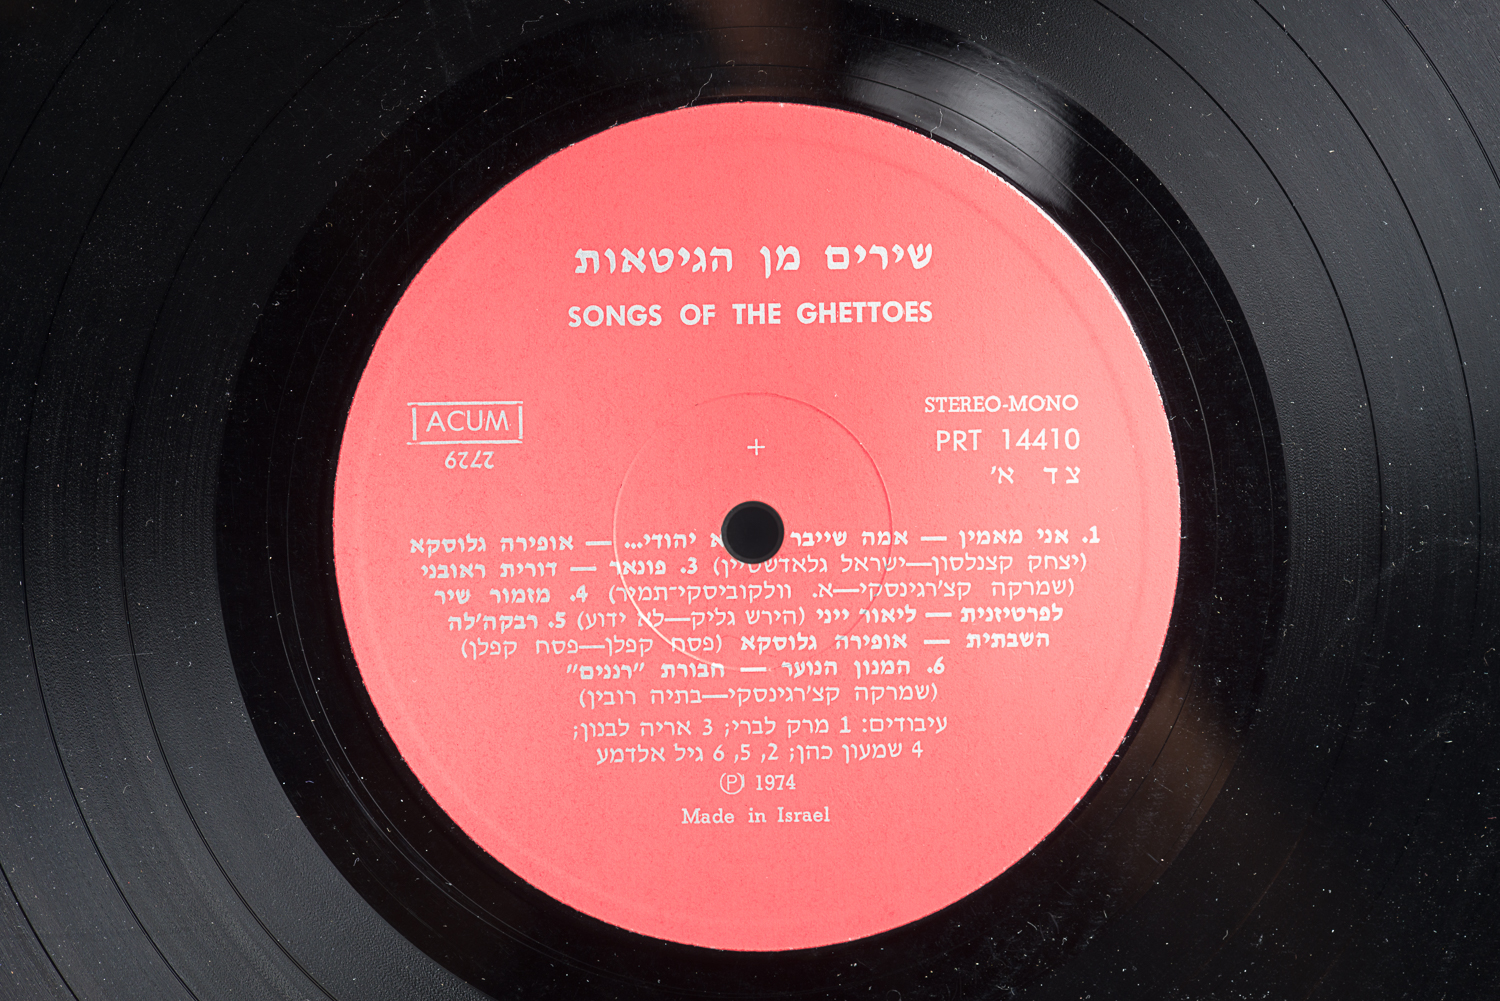 The first title of this album is Ani Ma'amin, ''I Believe'', in English. The lyrics were inspired by faith in the Jewish religion and are a testimony of spiritual resistance during the Holocaust. (Photo: Peter Berra)